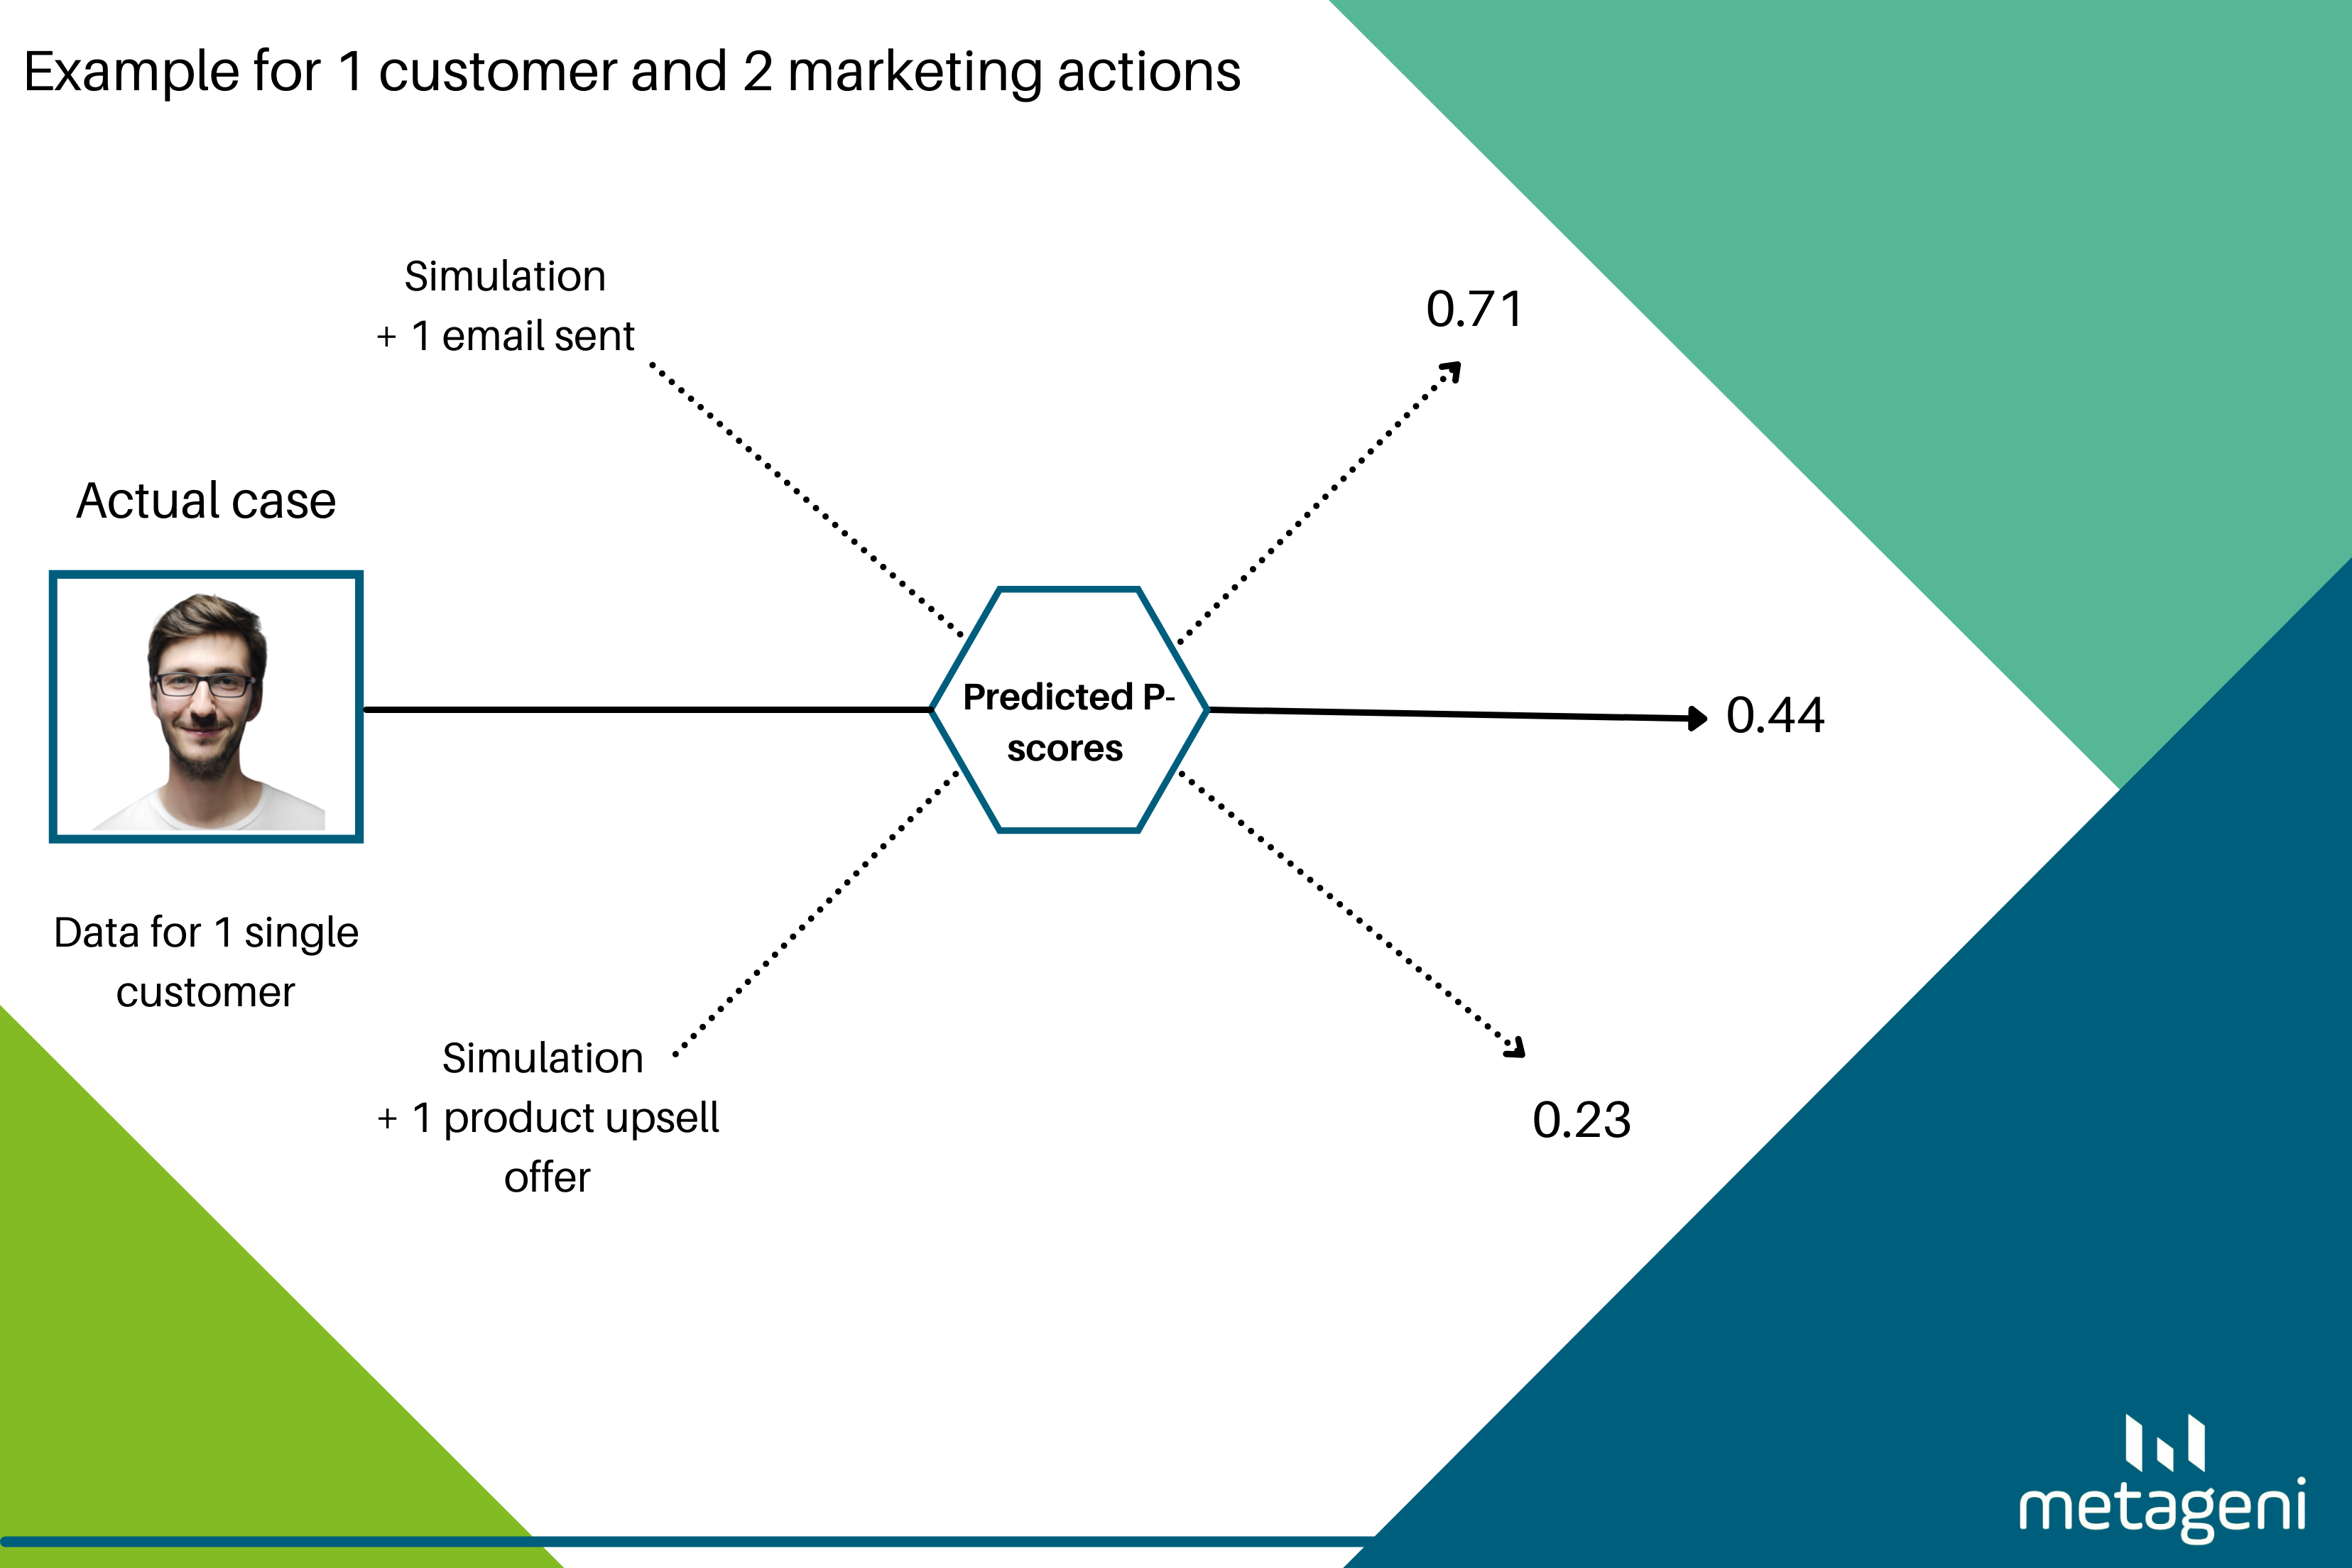 Machine learning for predicting customer intent